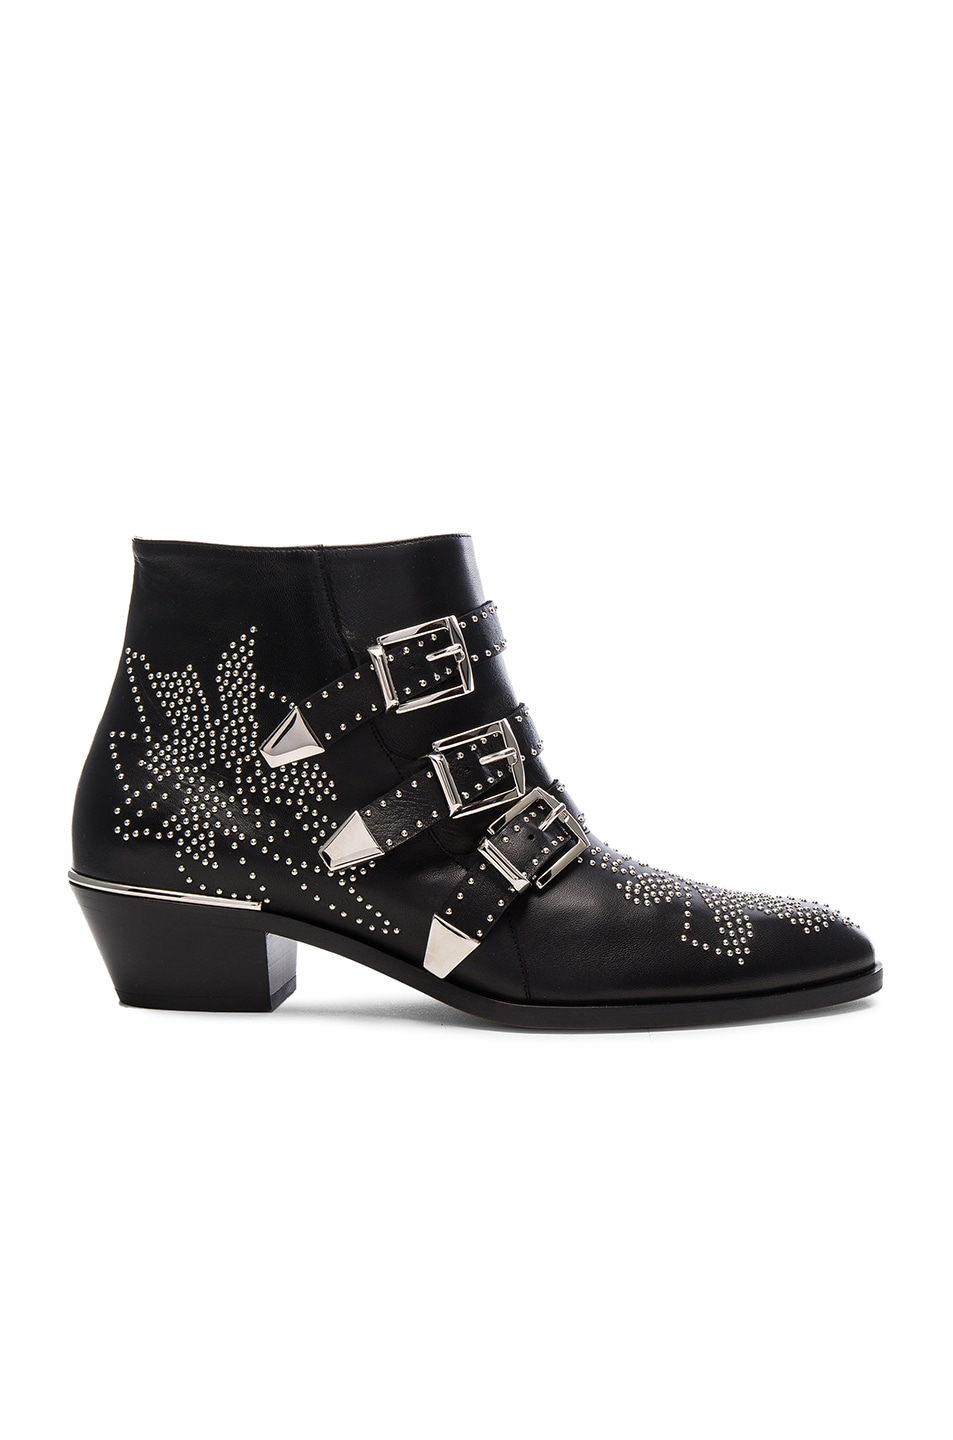 Image 1 of Chloe Susanna Leather Studded Booties in Black & Silver